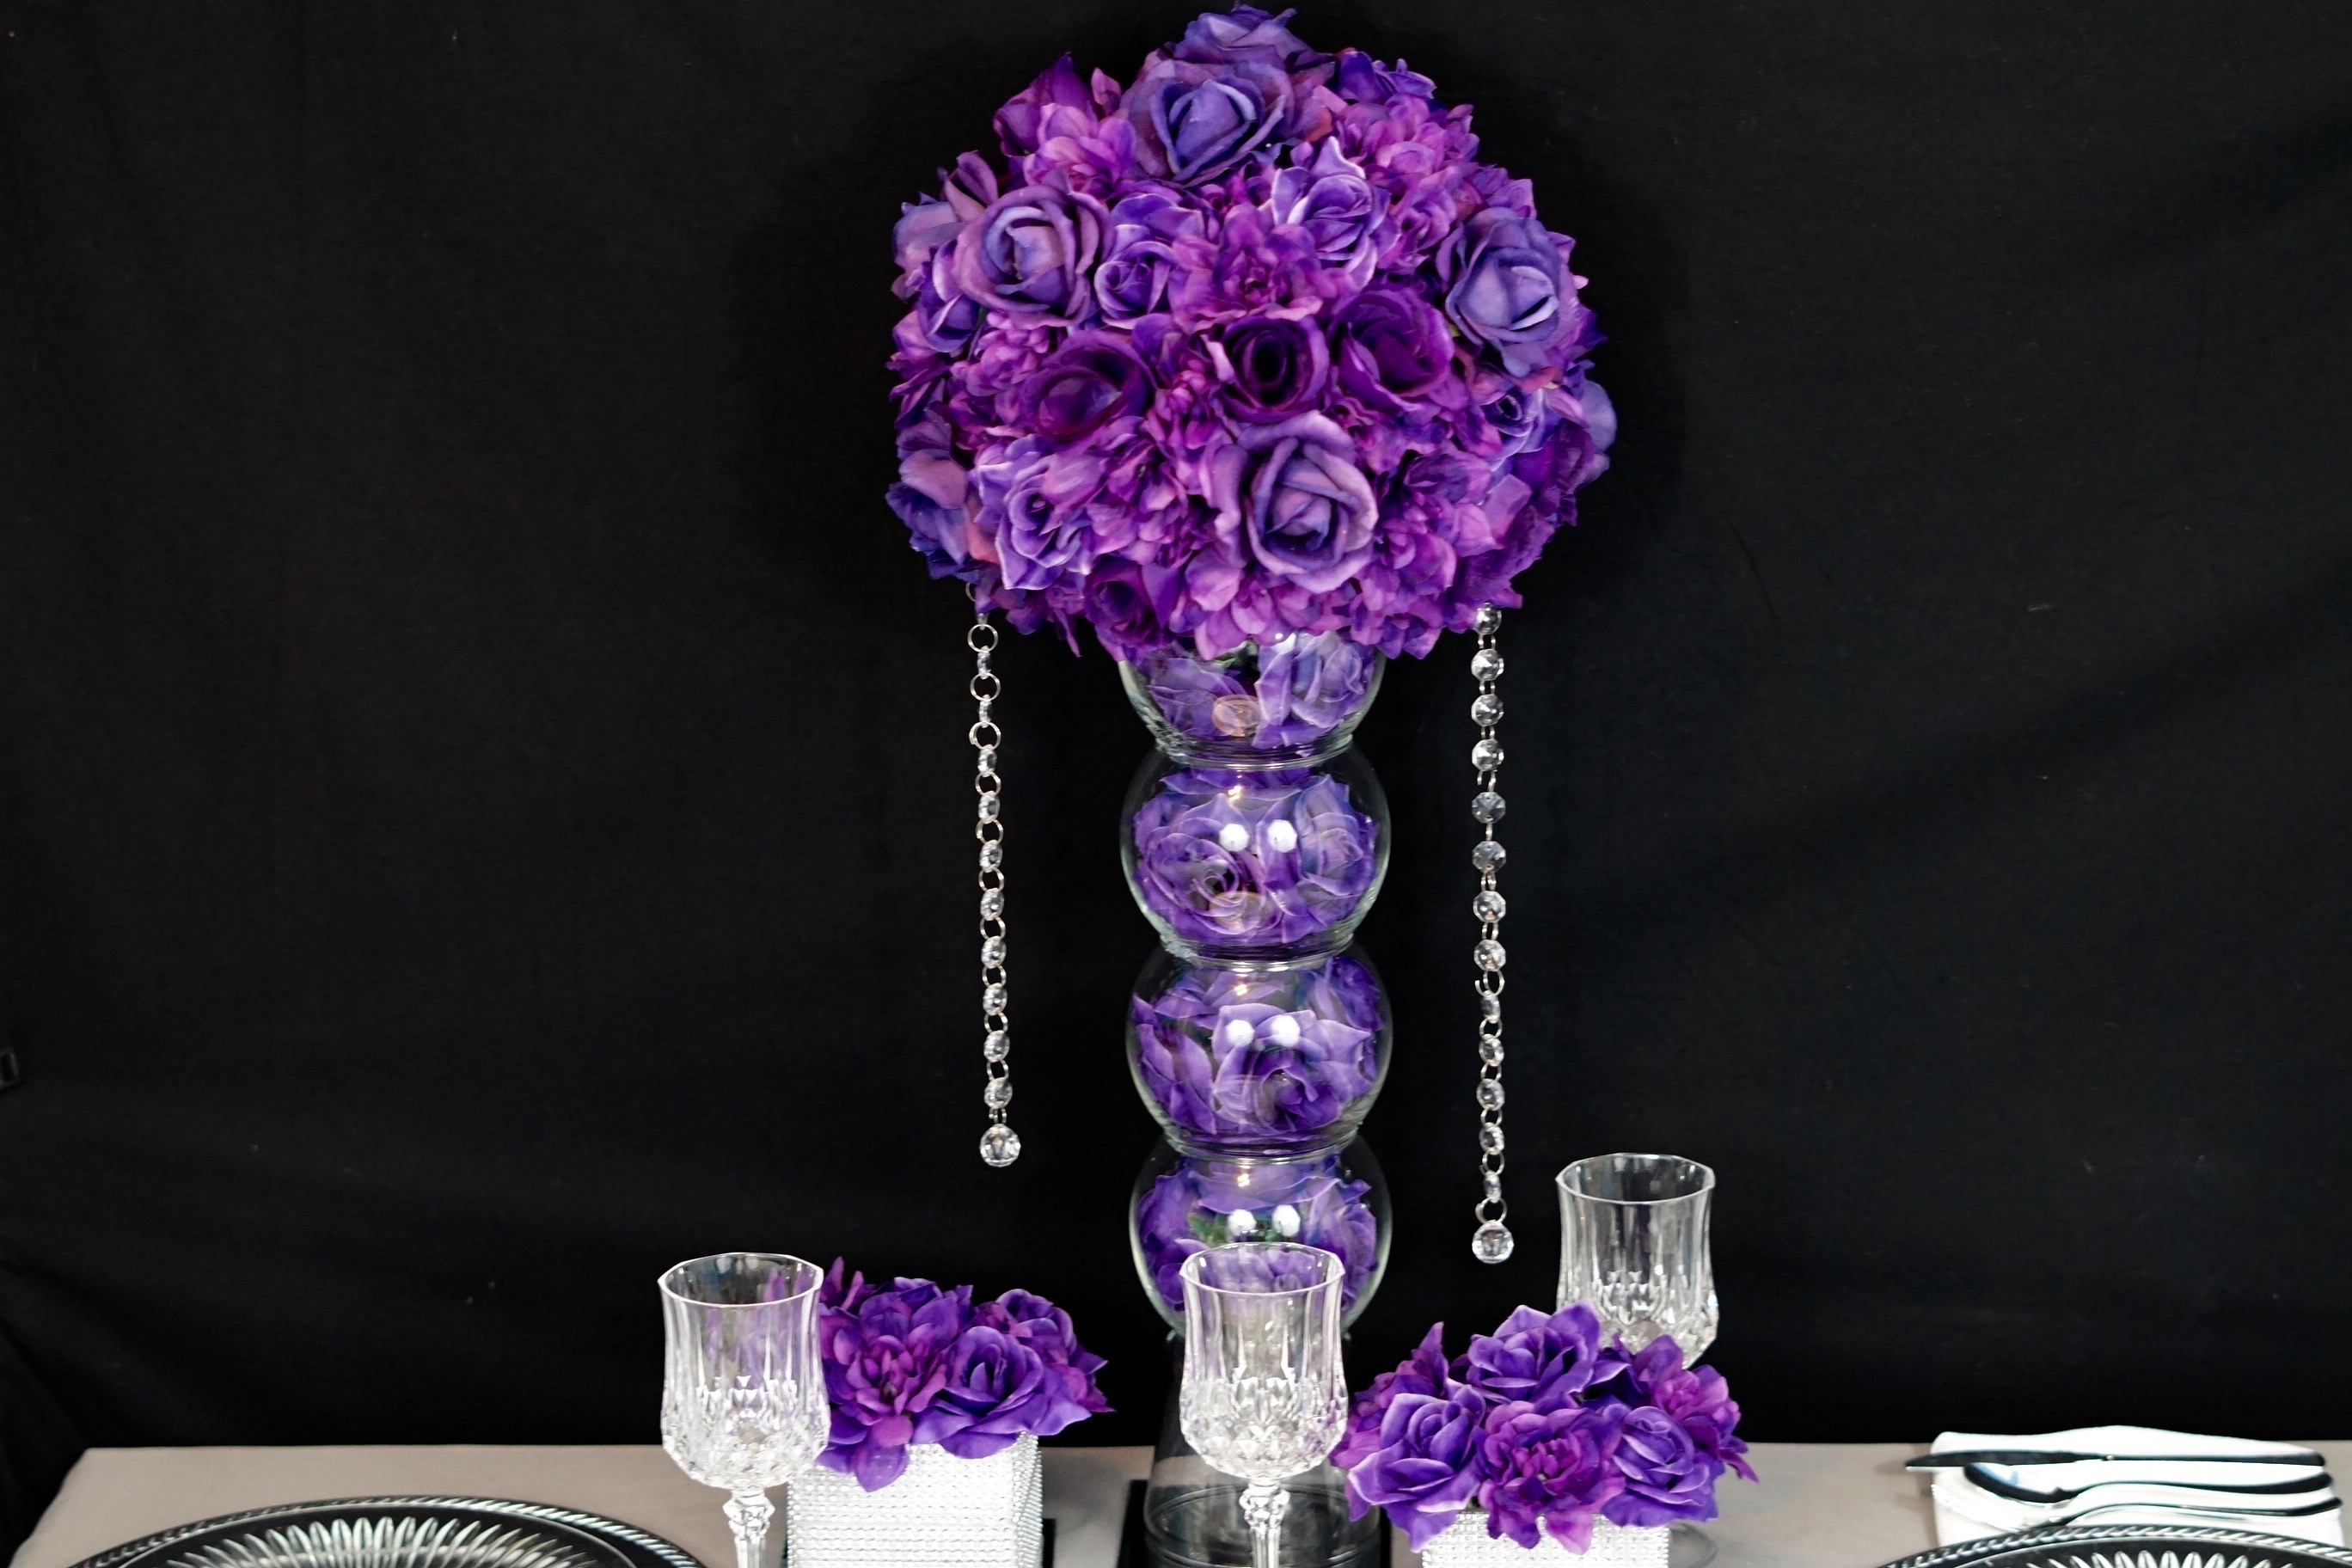 Diy purple passion wedding centerpiece in 3 easy steps i absolutely love how this purple passion wedding centerpiece thank you shunika for letting us be apart of your special day junglespirit Choice Image